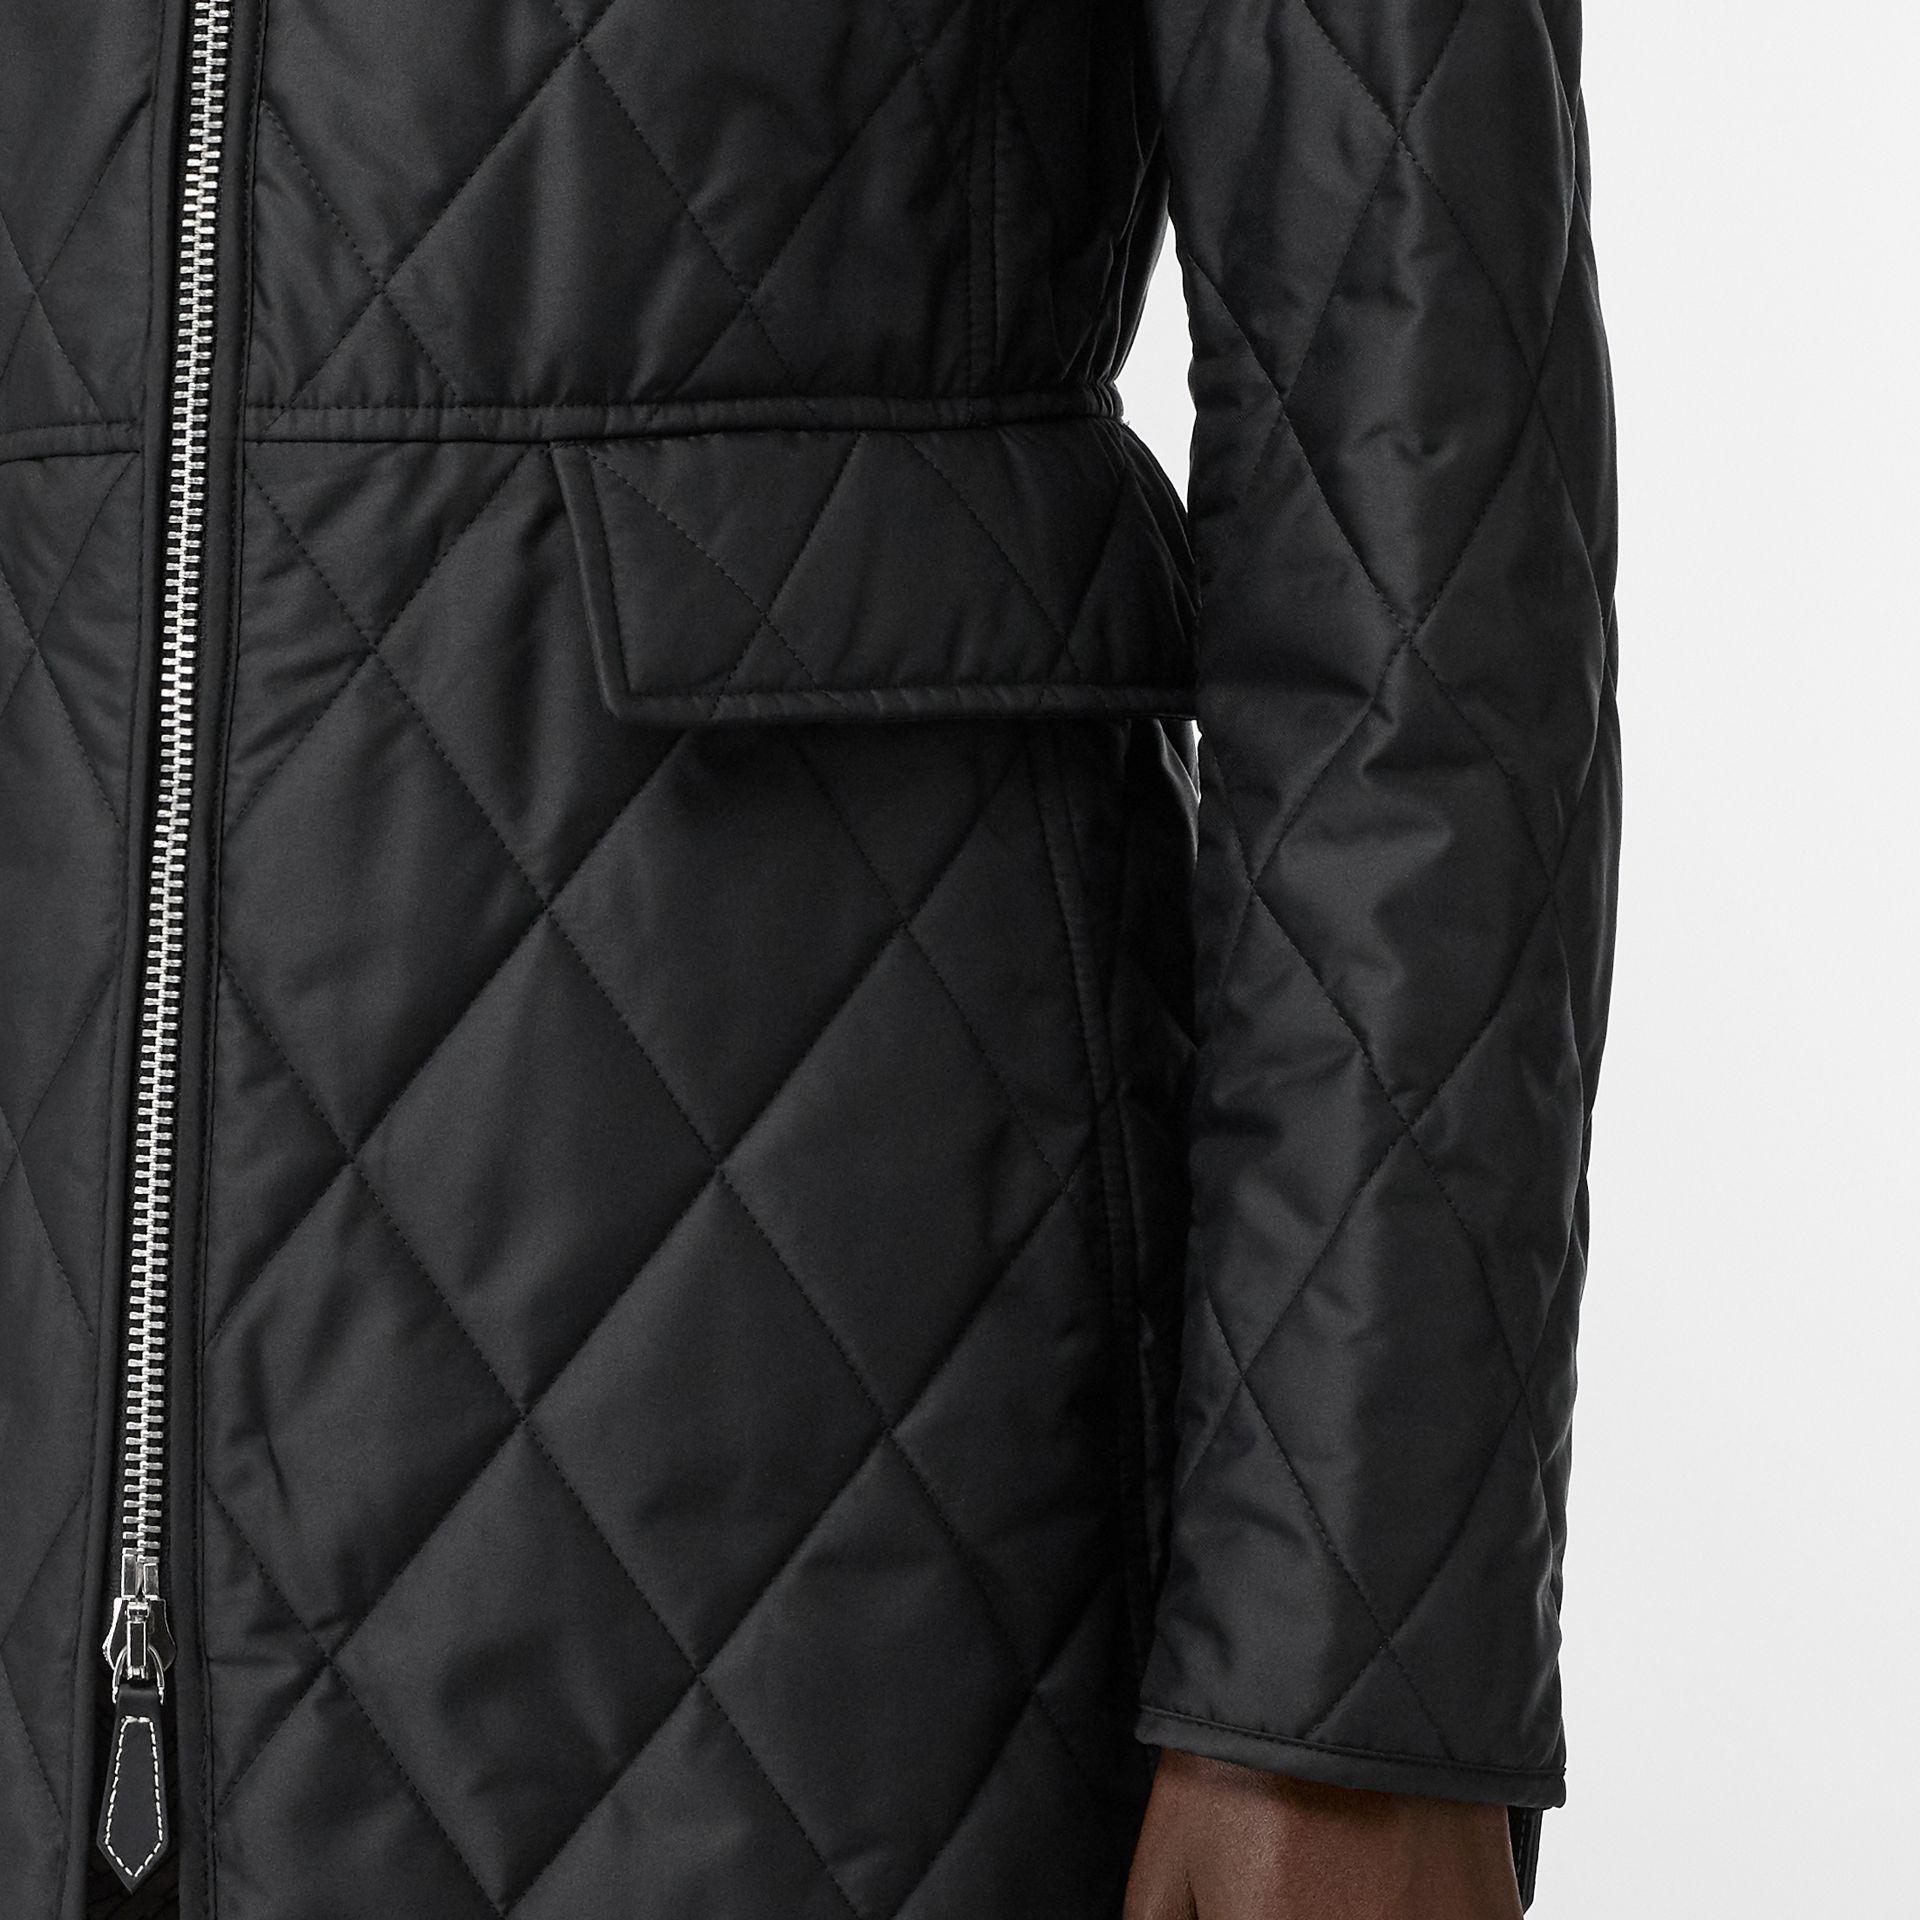 Monogram Motif Quilted Riding Coat in Black - Women | Burberry United Kingdom - gallery image 4